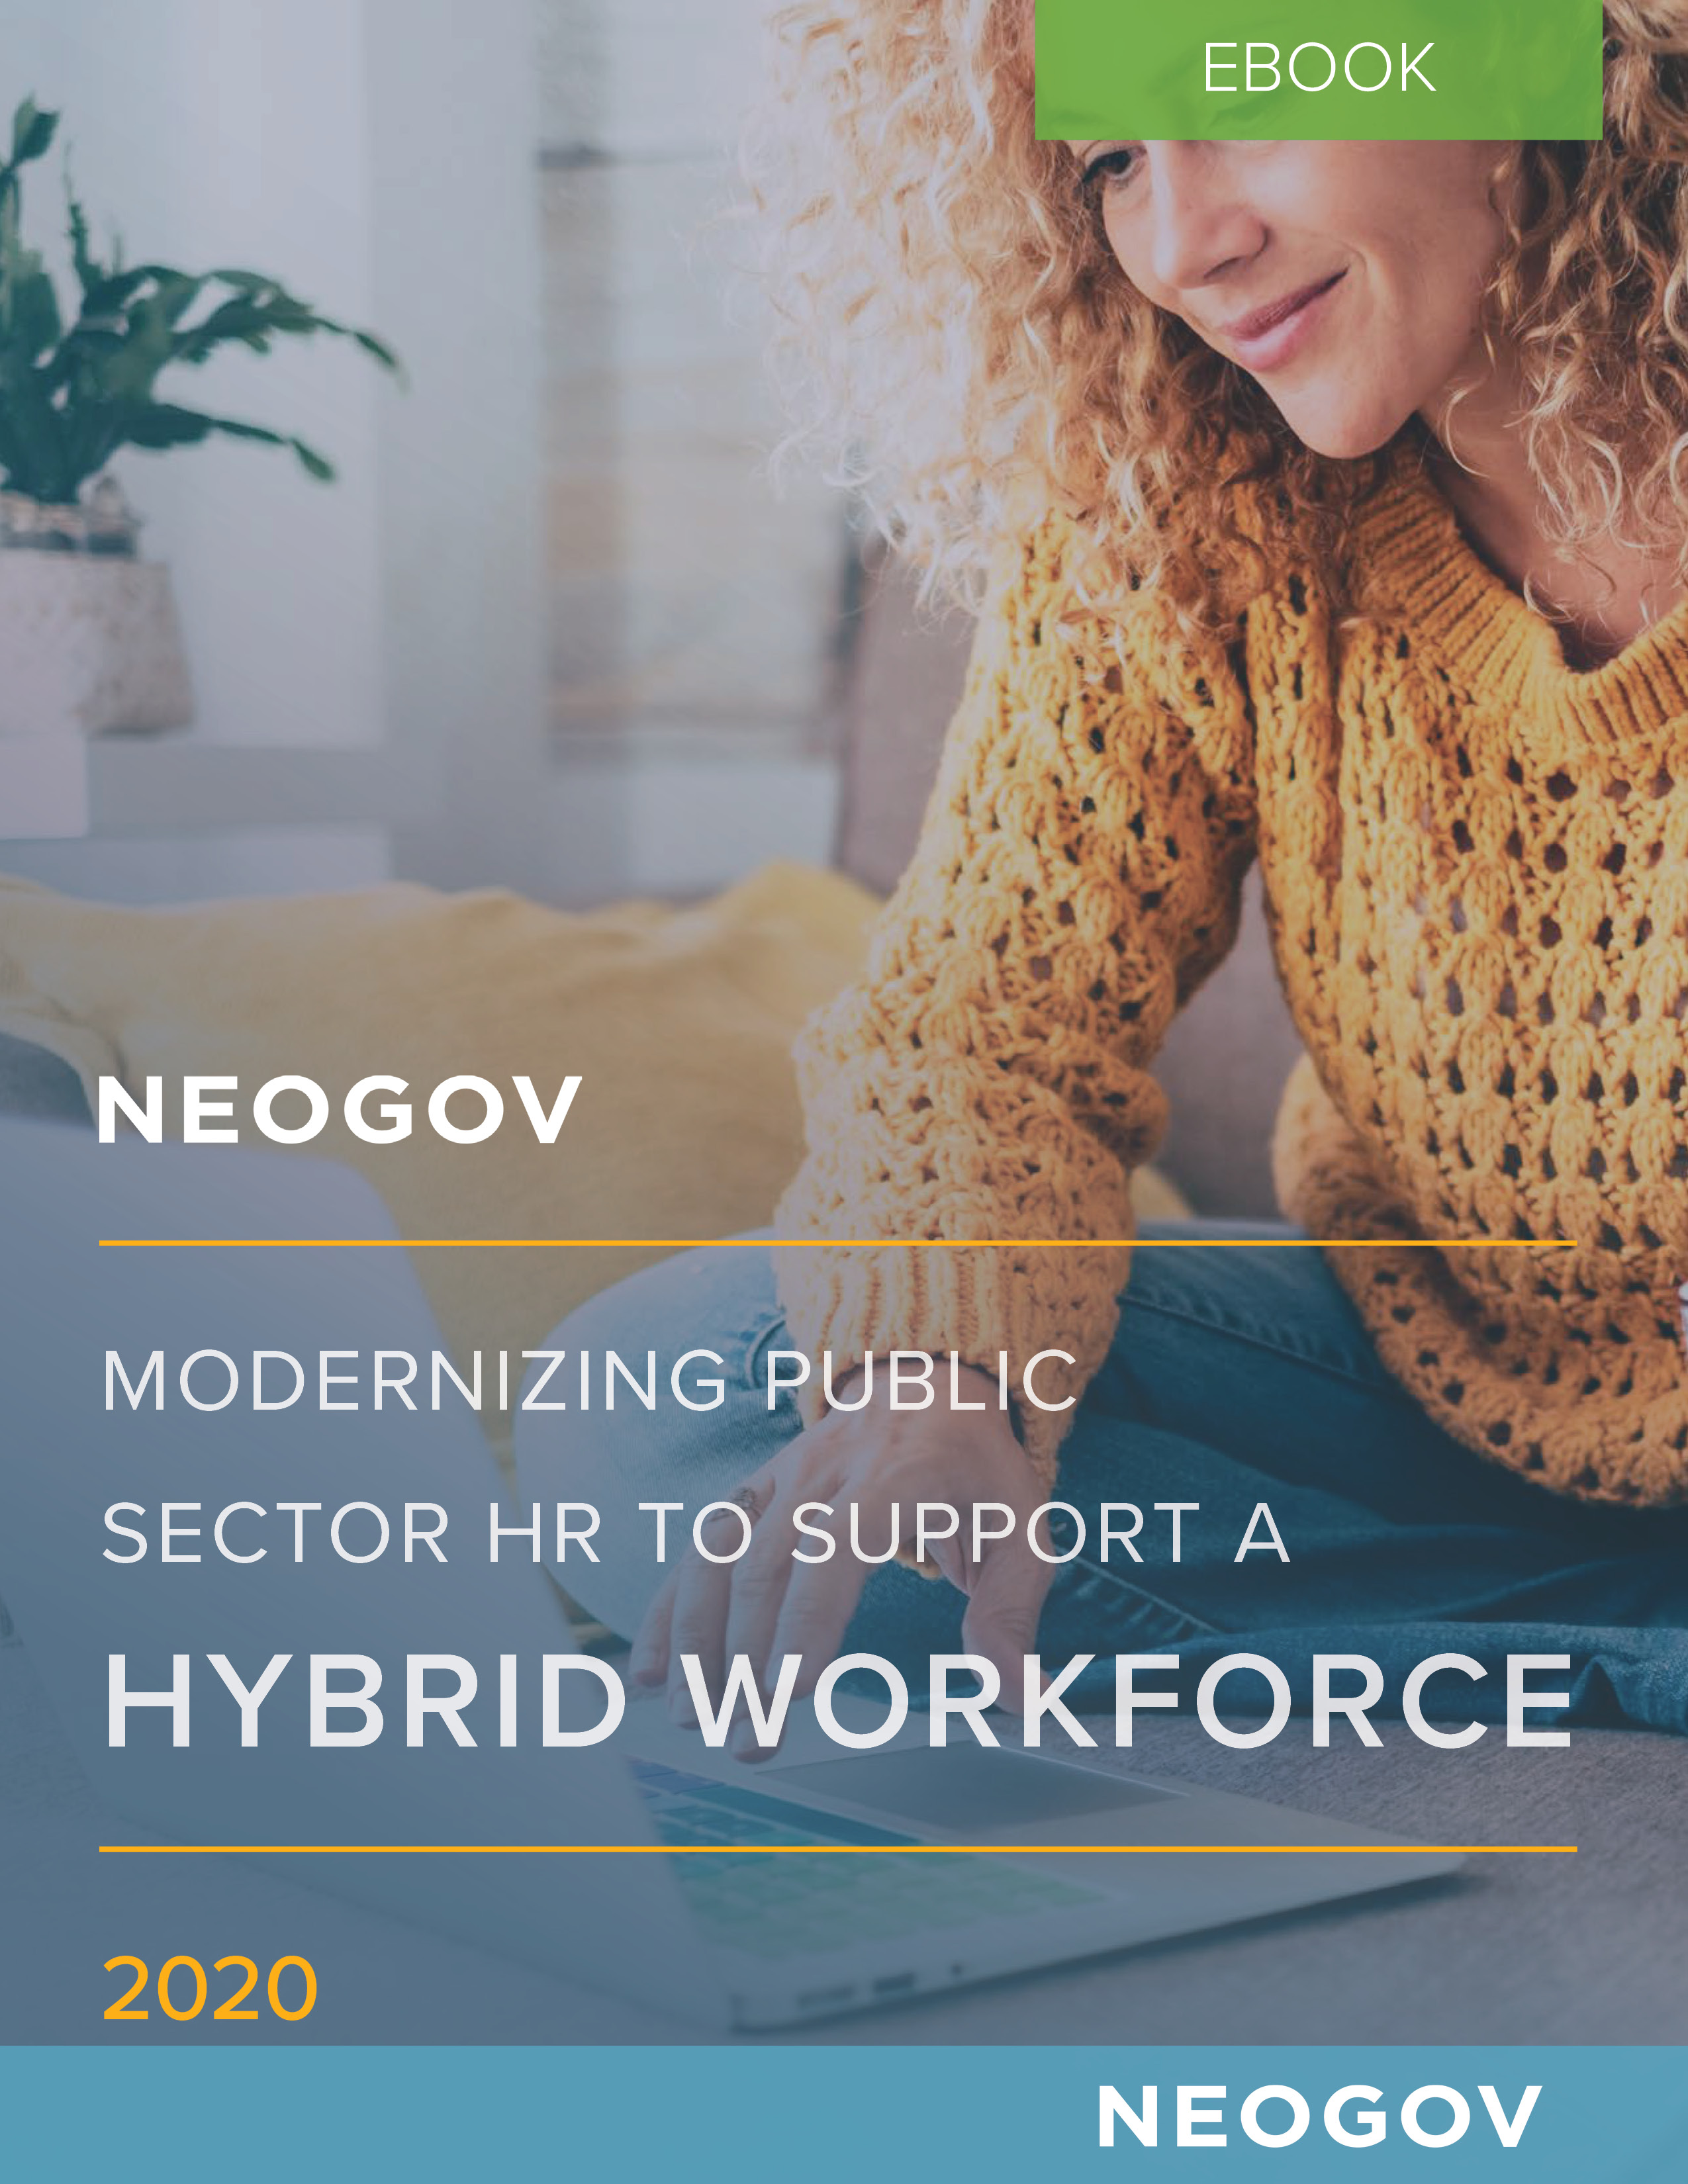 Modernizing Public Sector HR to Support a Hybrid Workforce